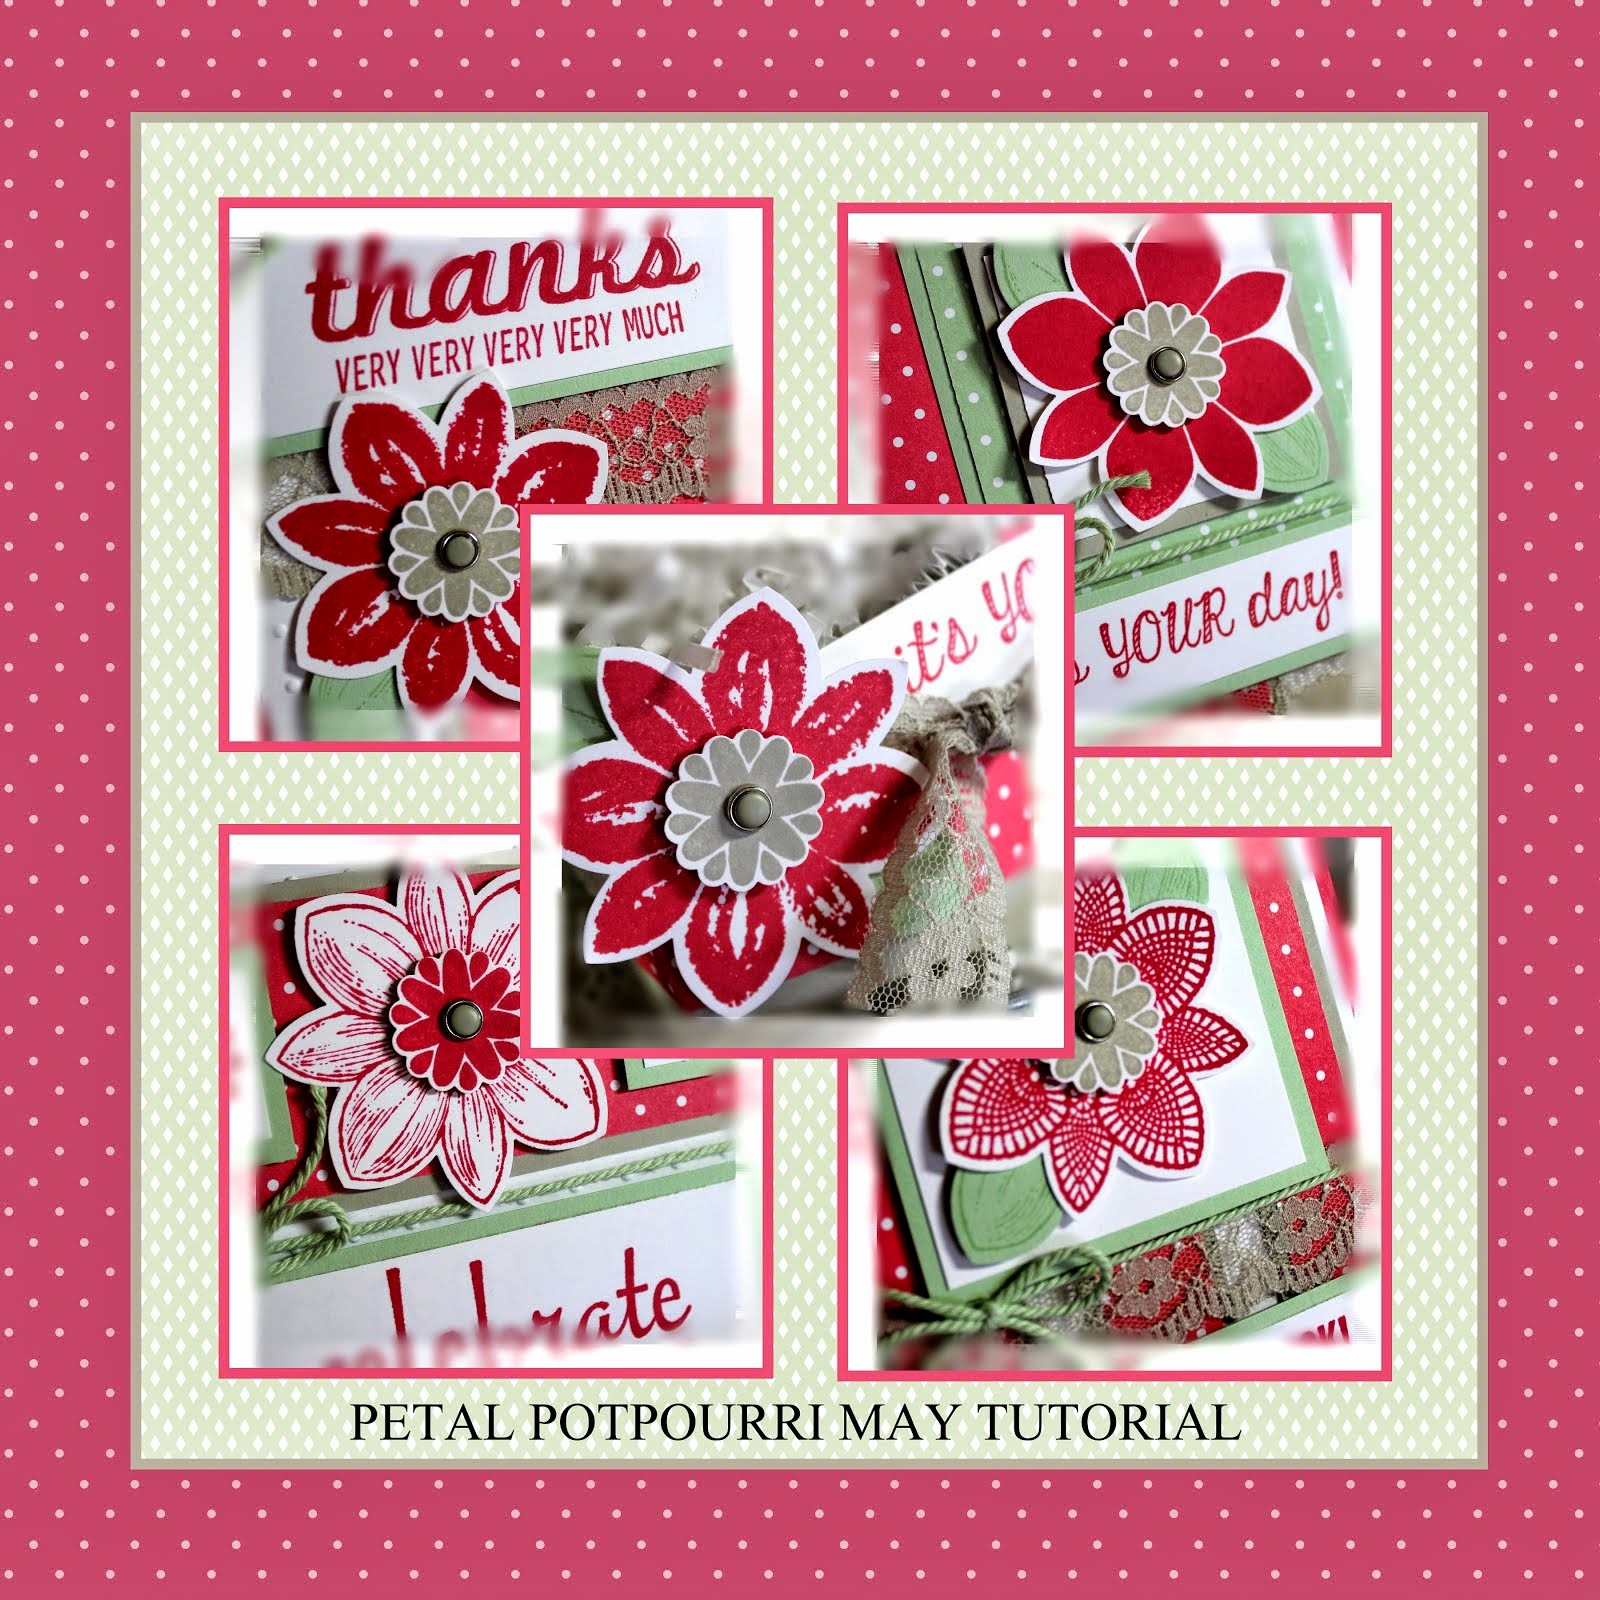 May 2015 Petal Potpourri Tutorial